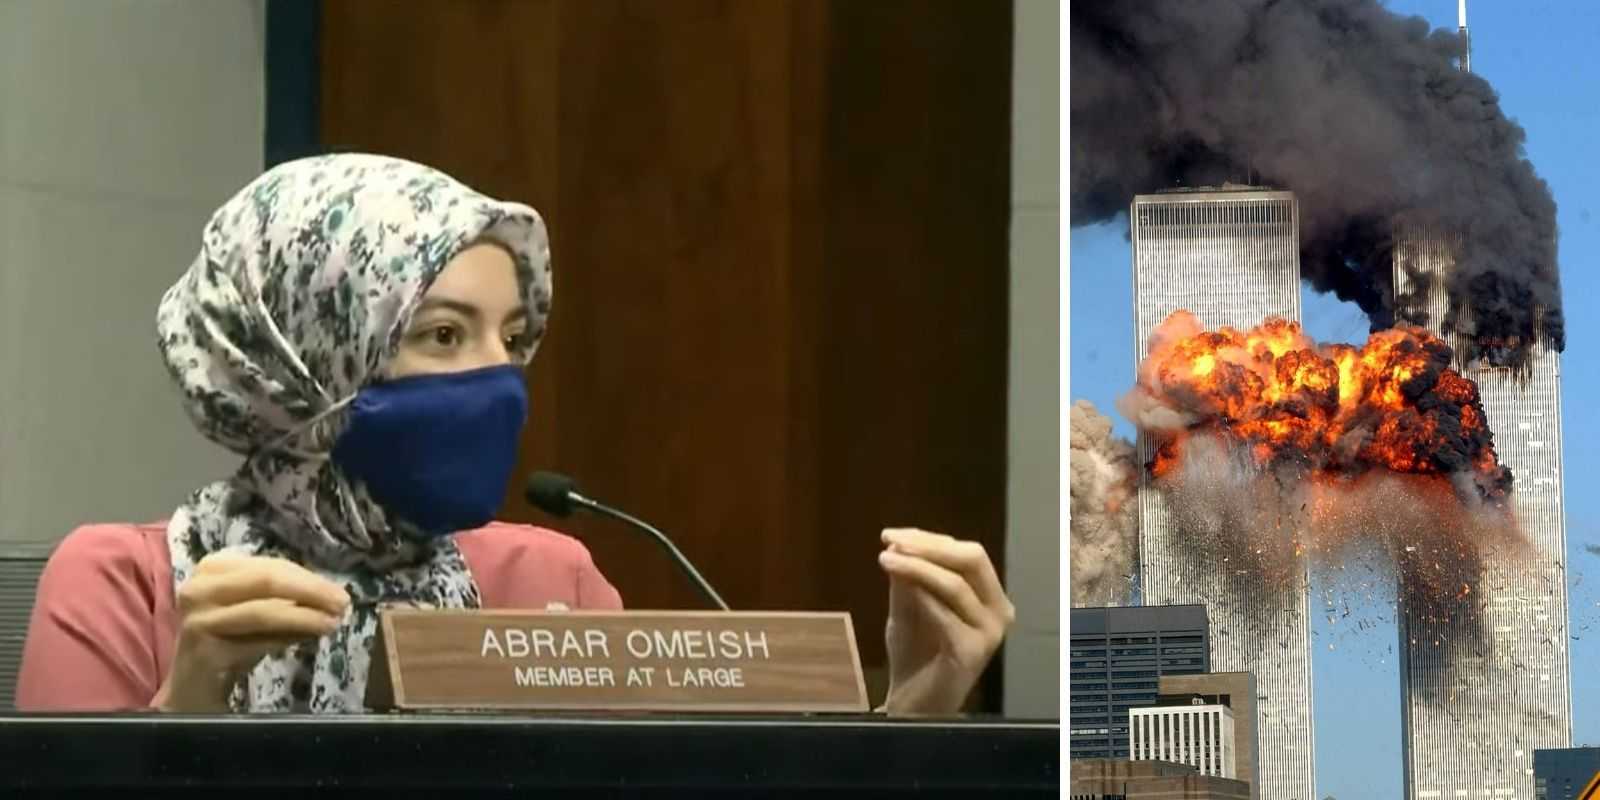 School board member whose father led mosque with ties to al-Qaeda opposes resolution to honor 9/11 victims